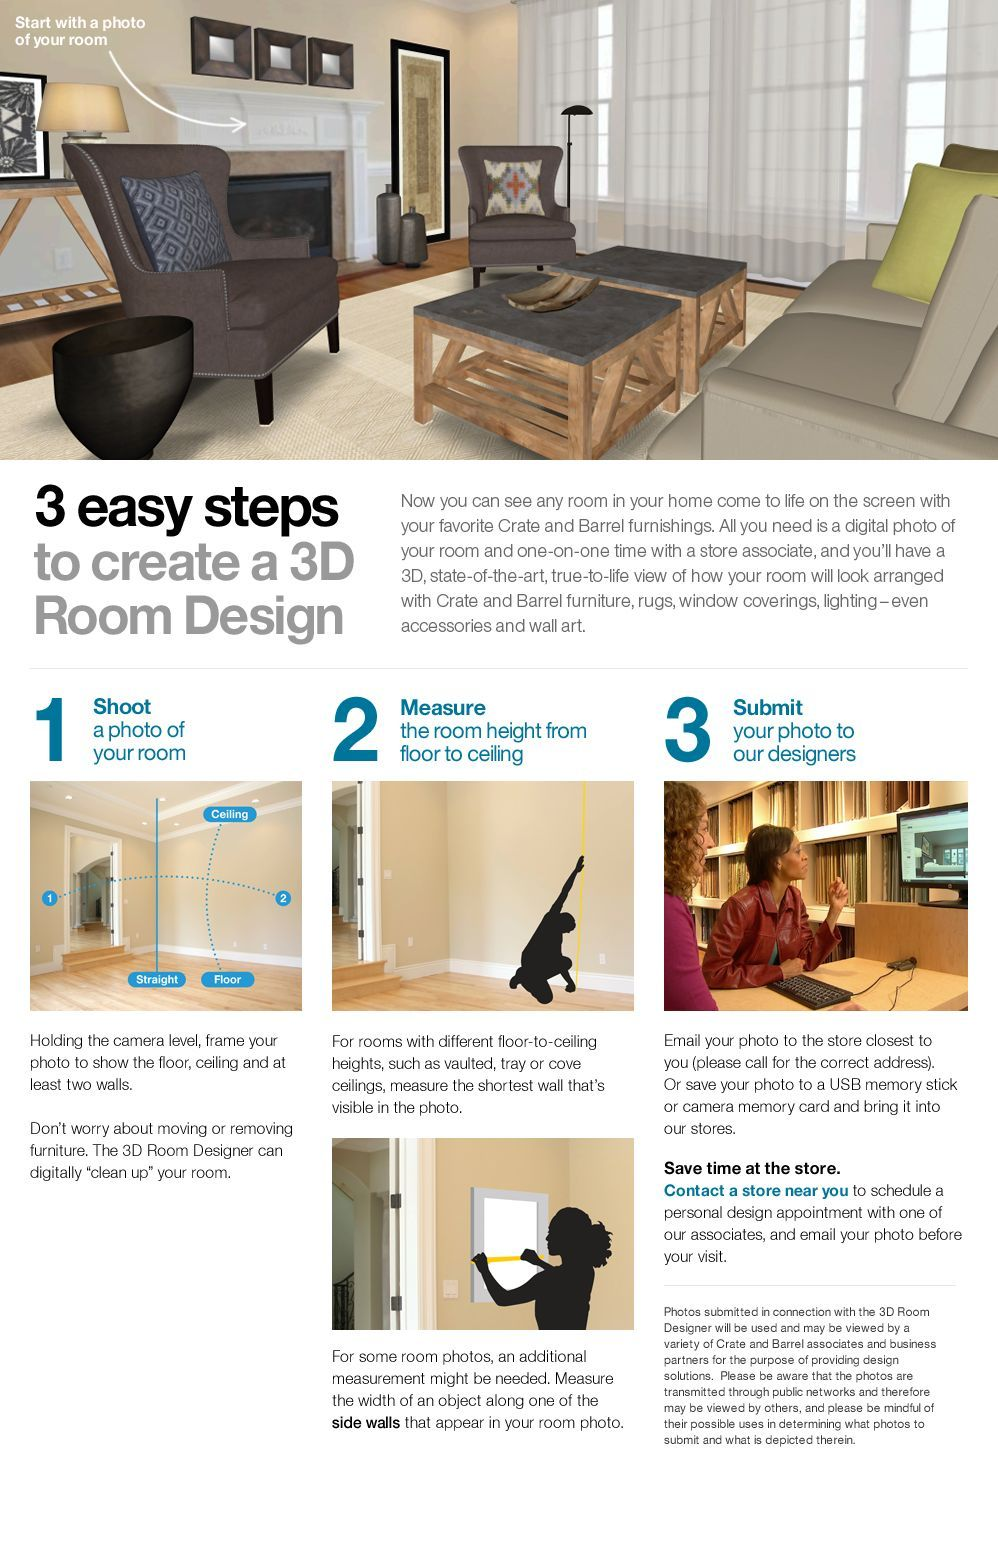 3 easy steps to create a 3D Room Design from Crate and Barrel Oh